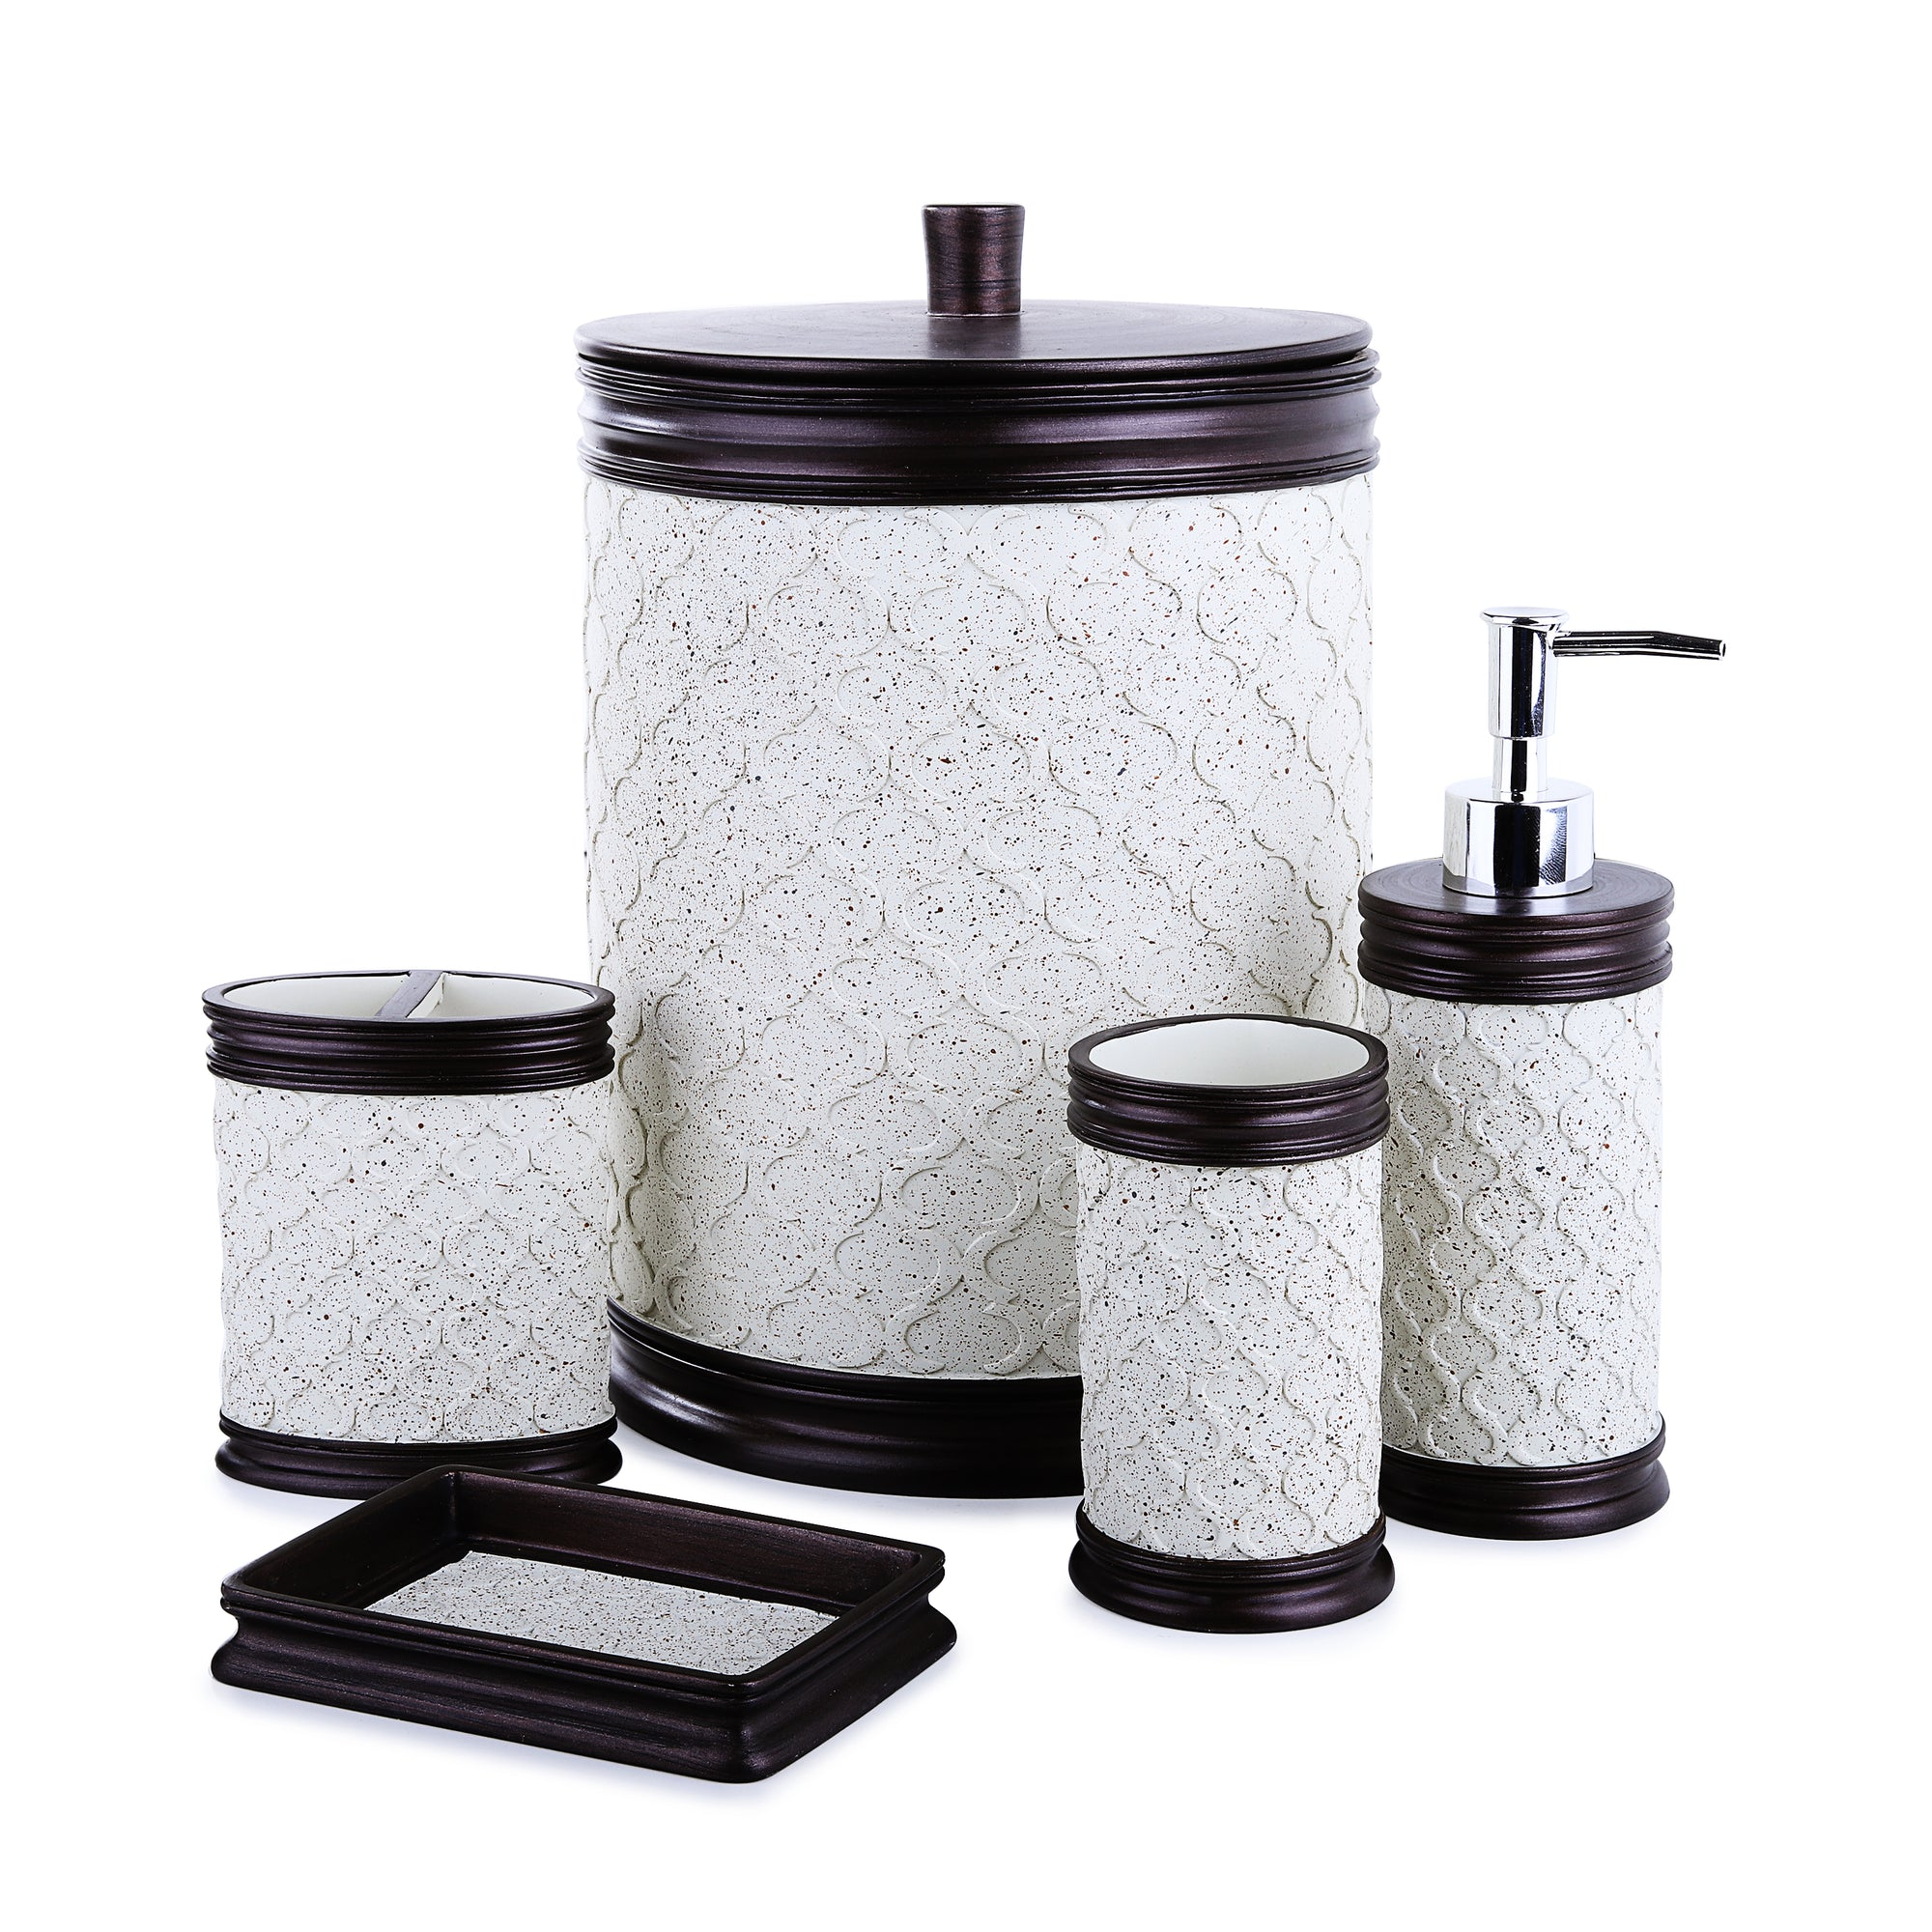 Texture Embossed Bath Accessories